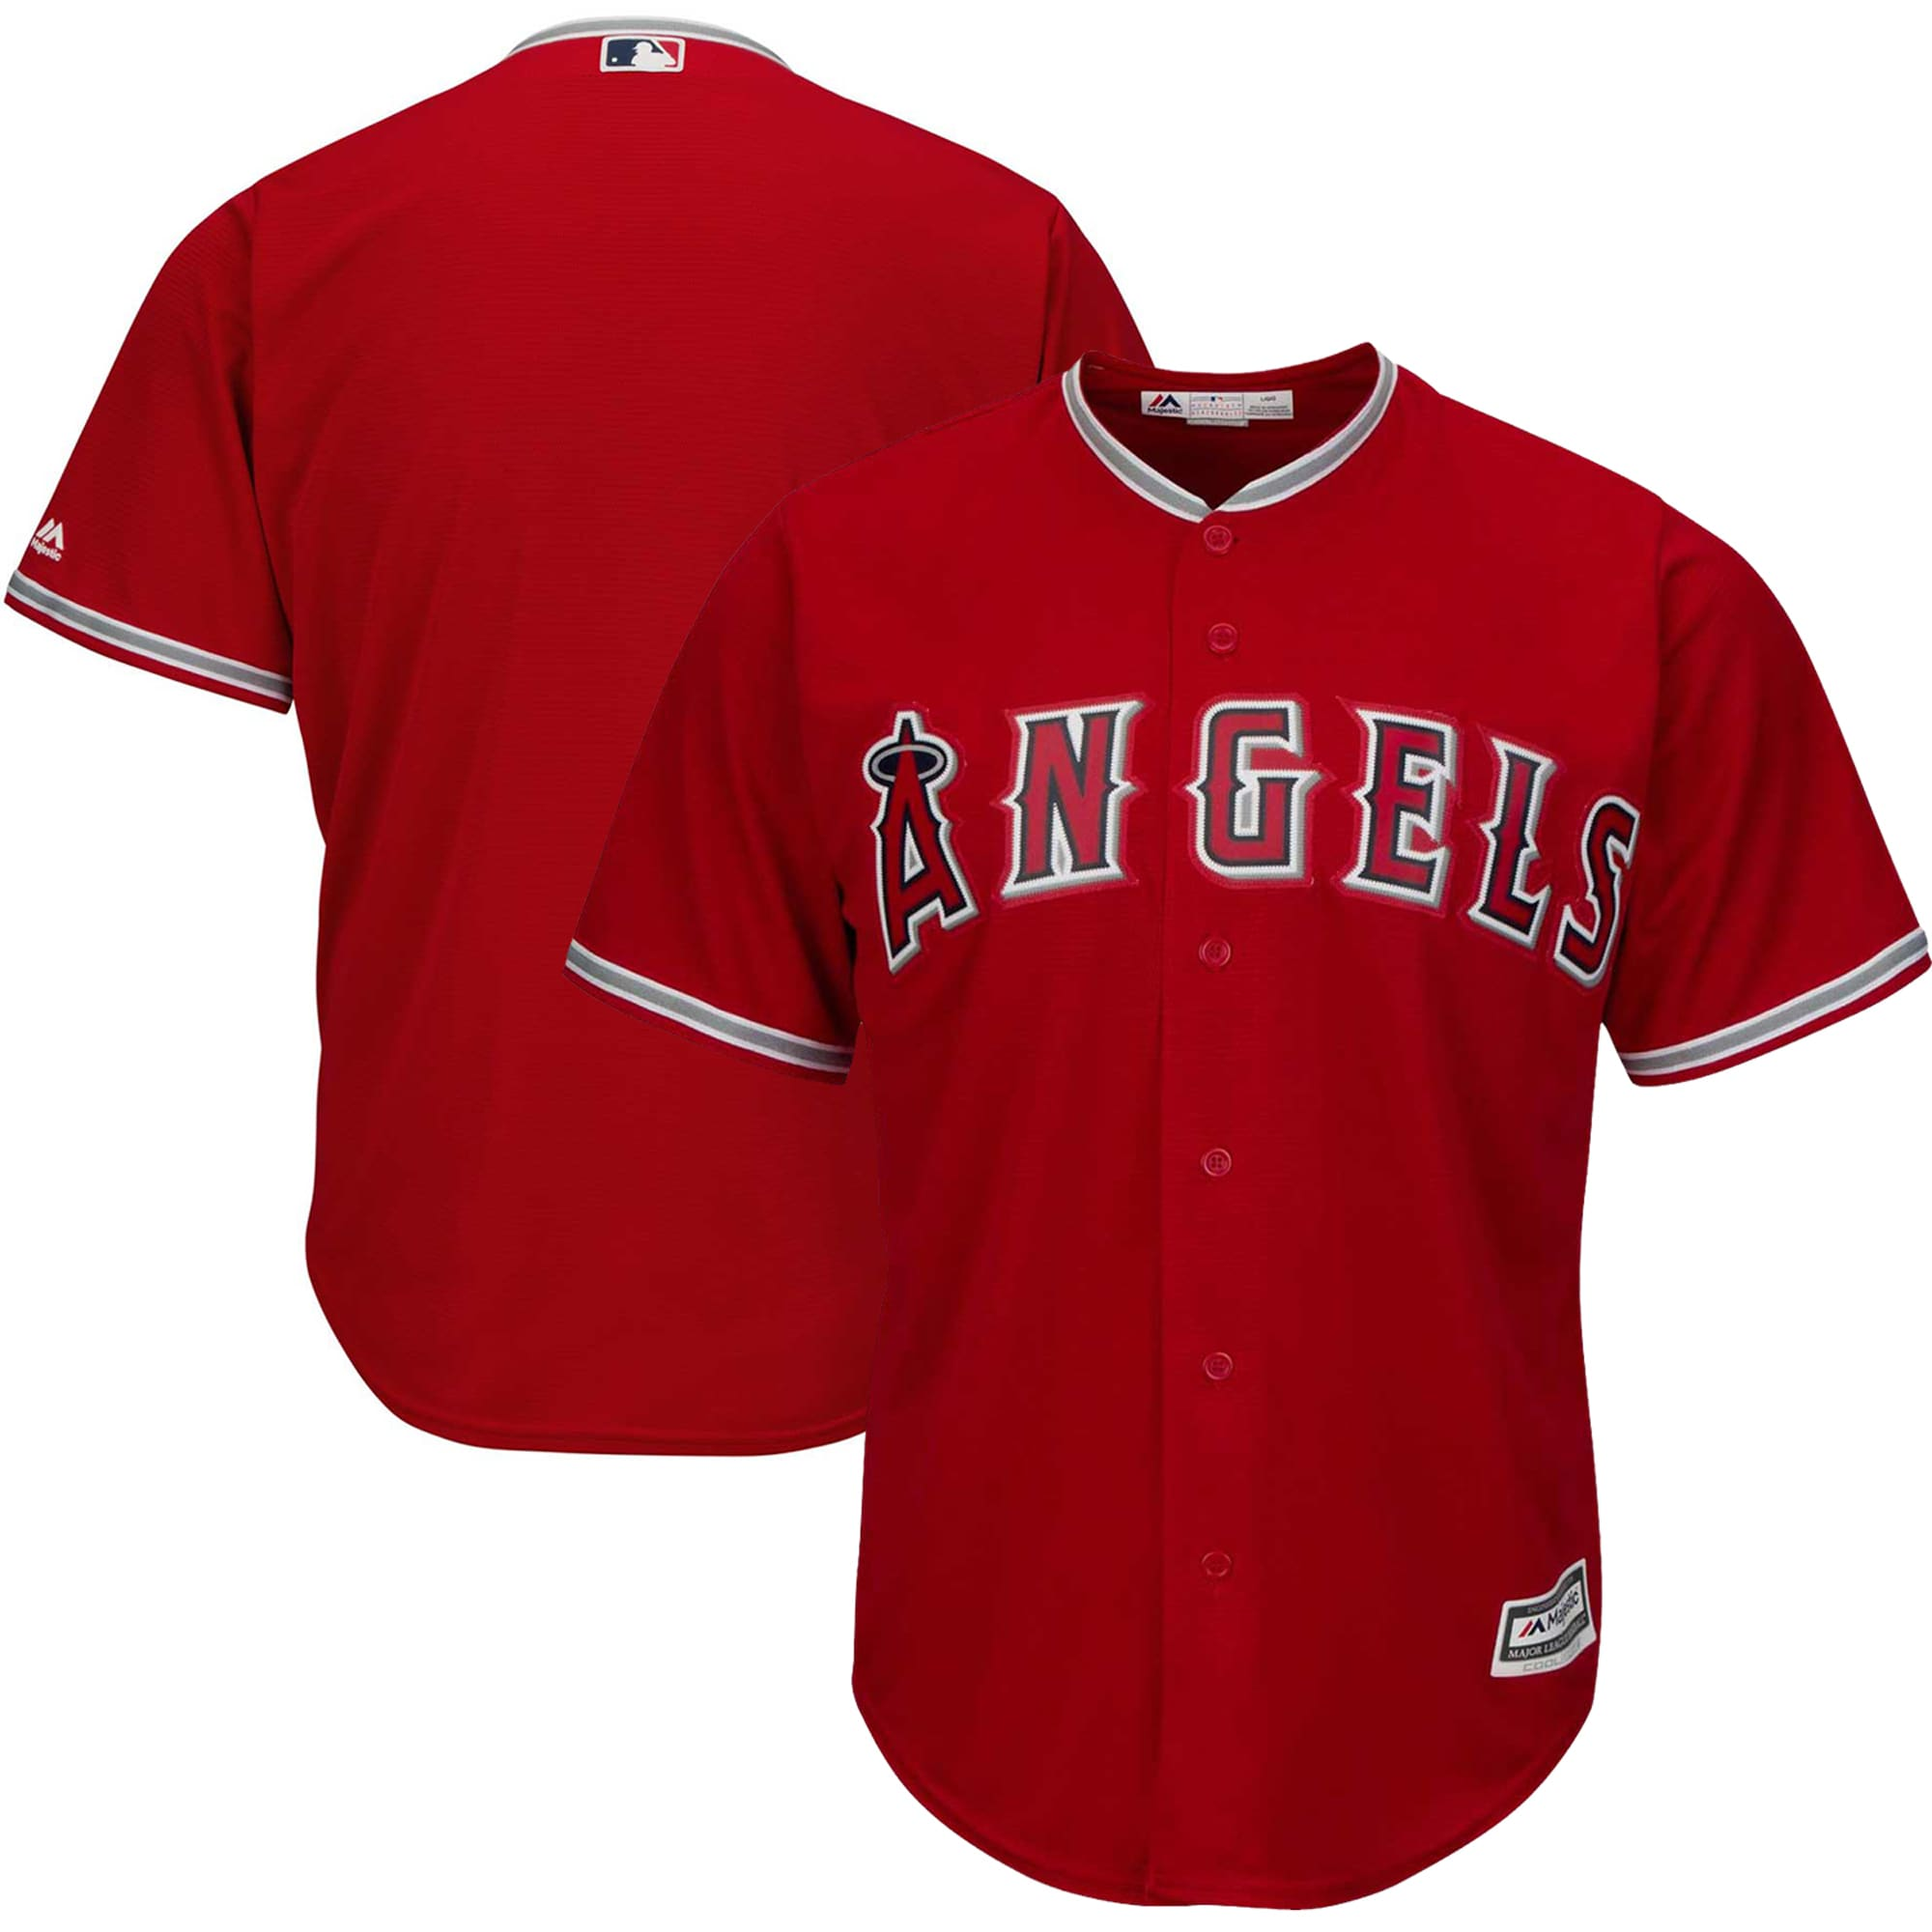 Los Angeles Angels Majestic Official Cool Base Jersey - Red